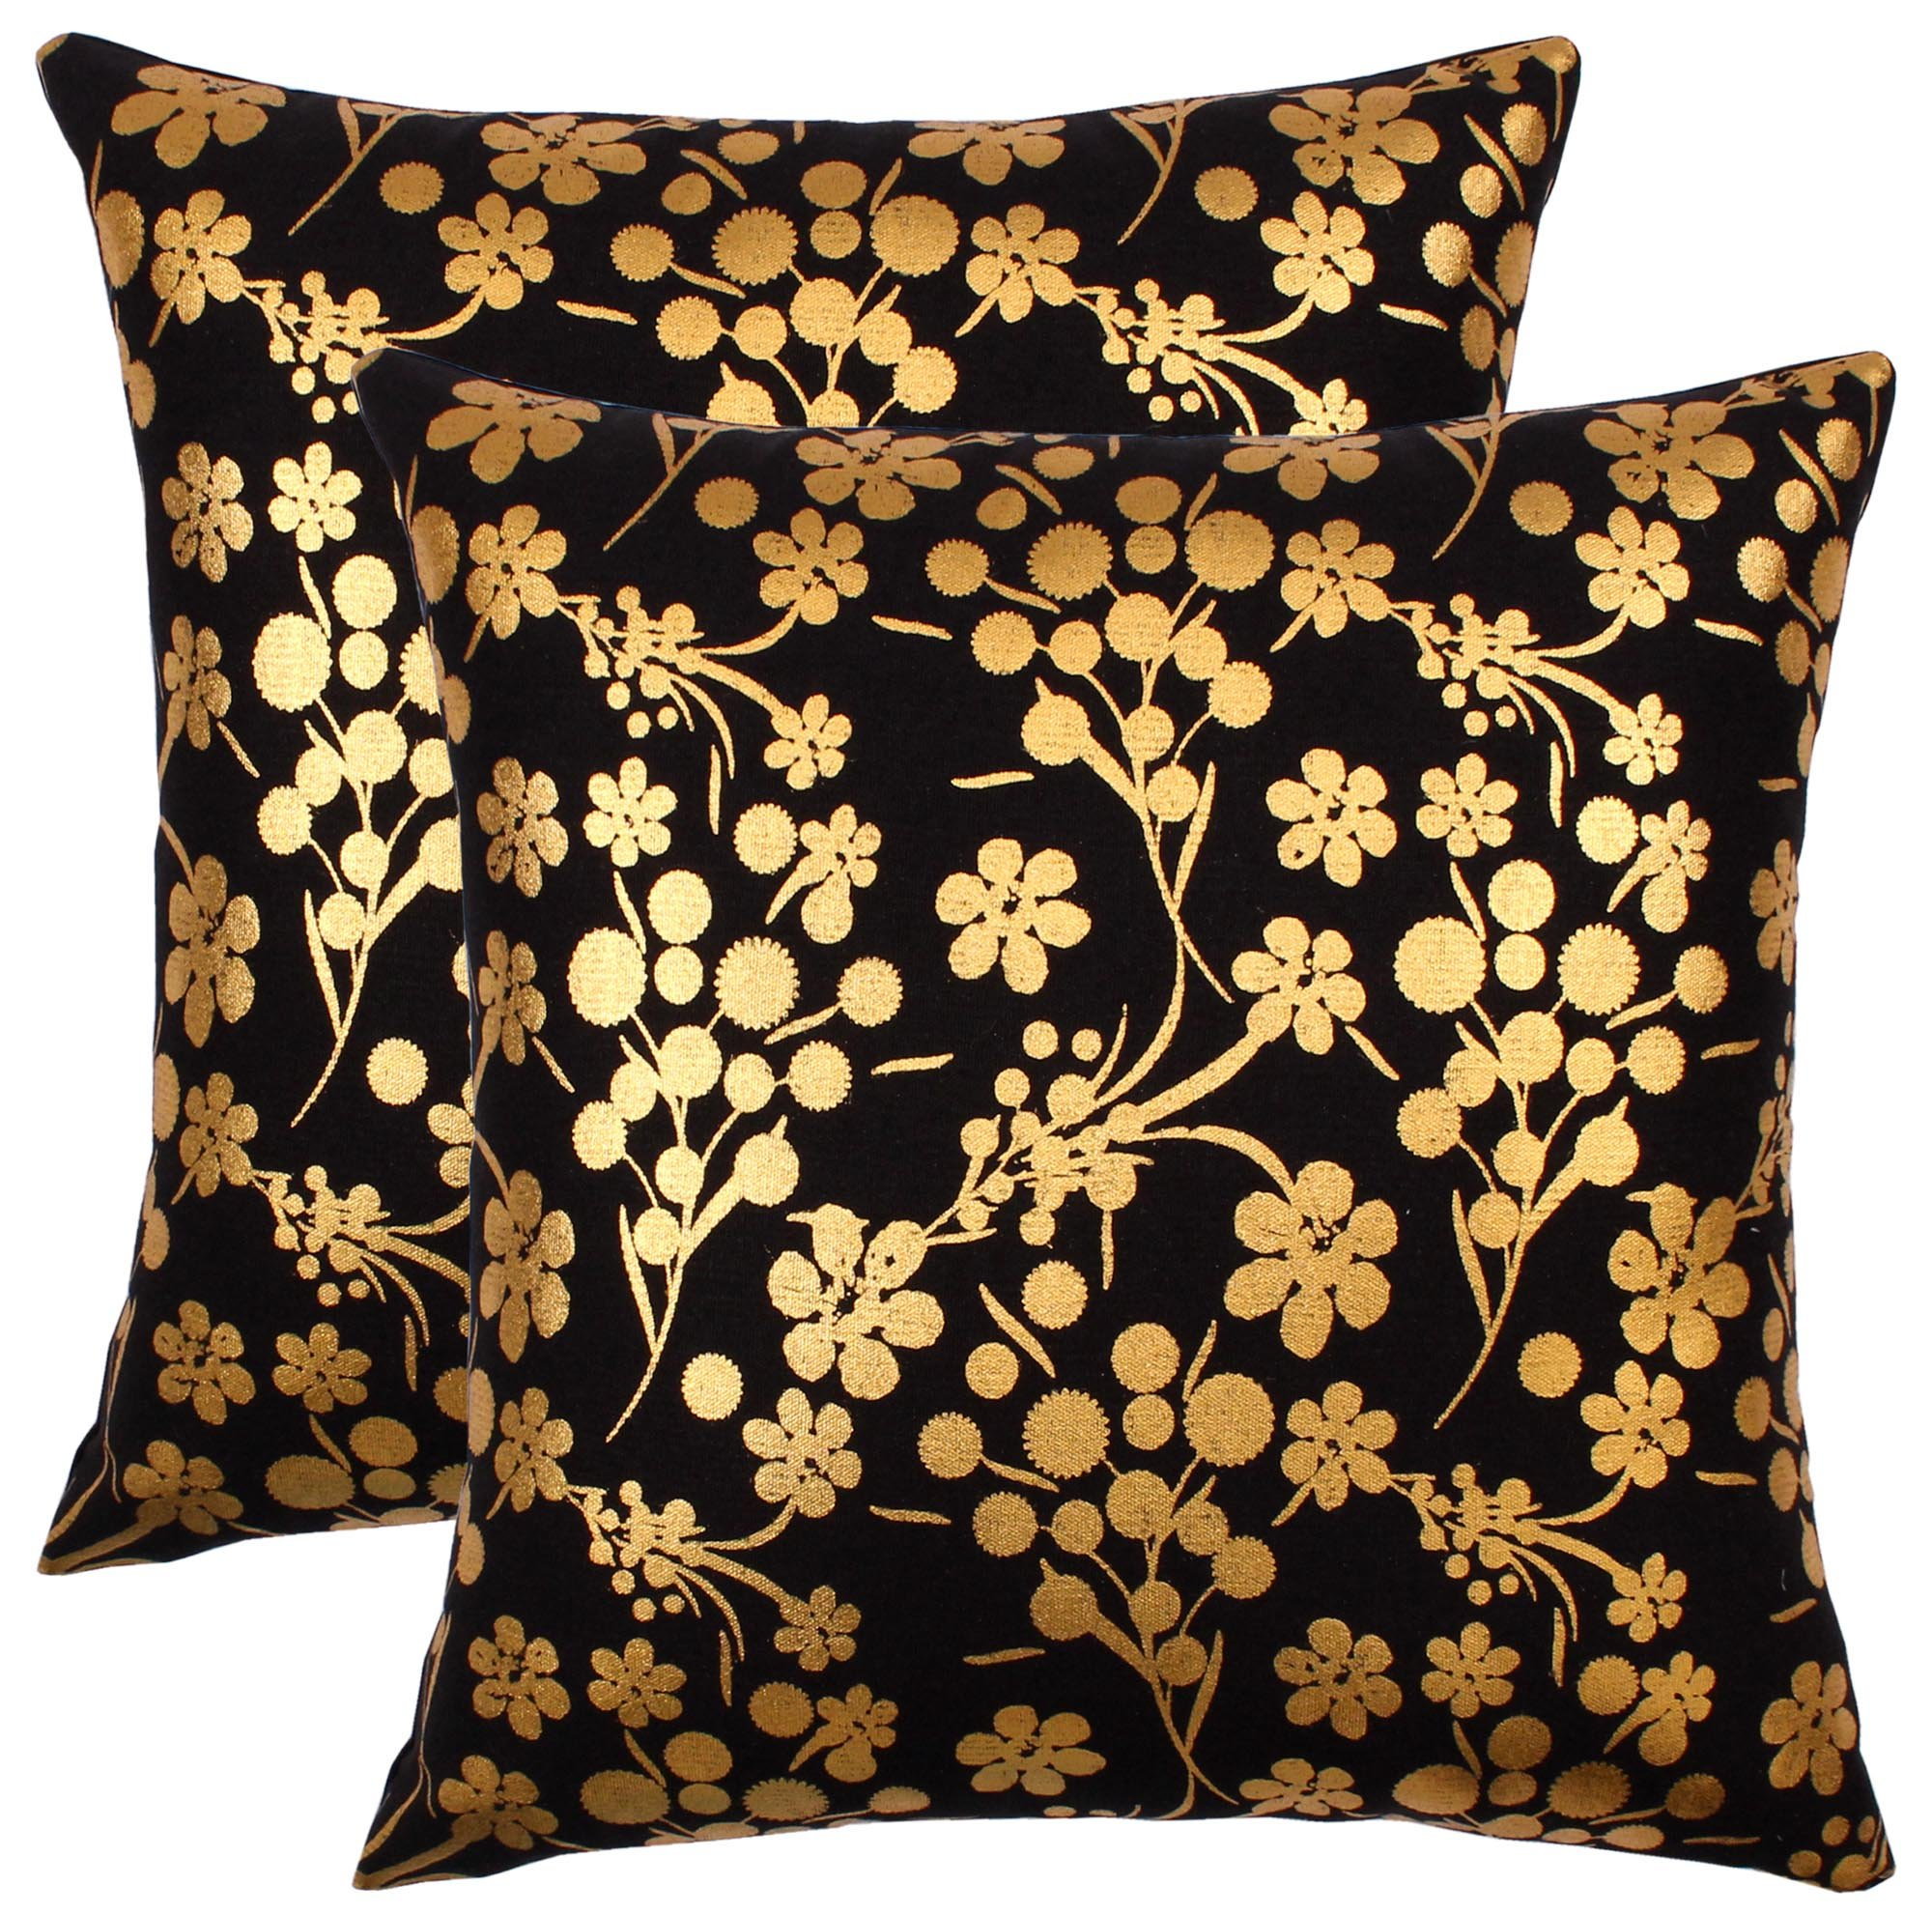 Bath Bed Decor Throw Pillow Covers (18'' x 18'', Retro Gold)